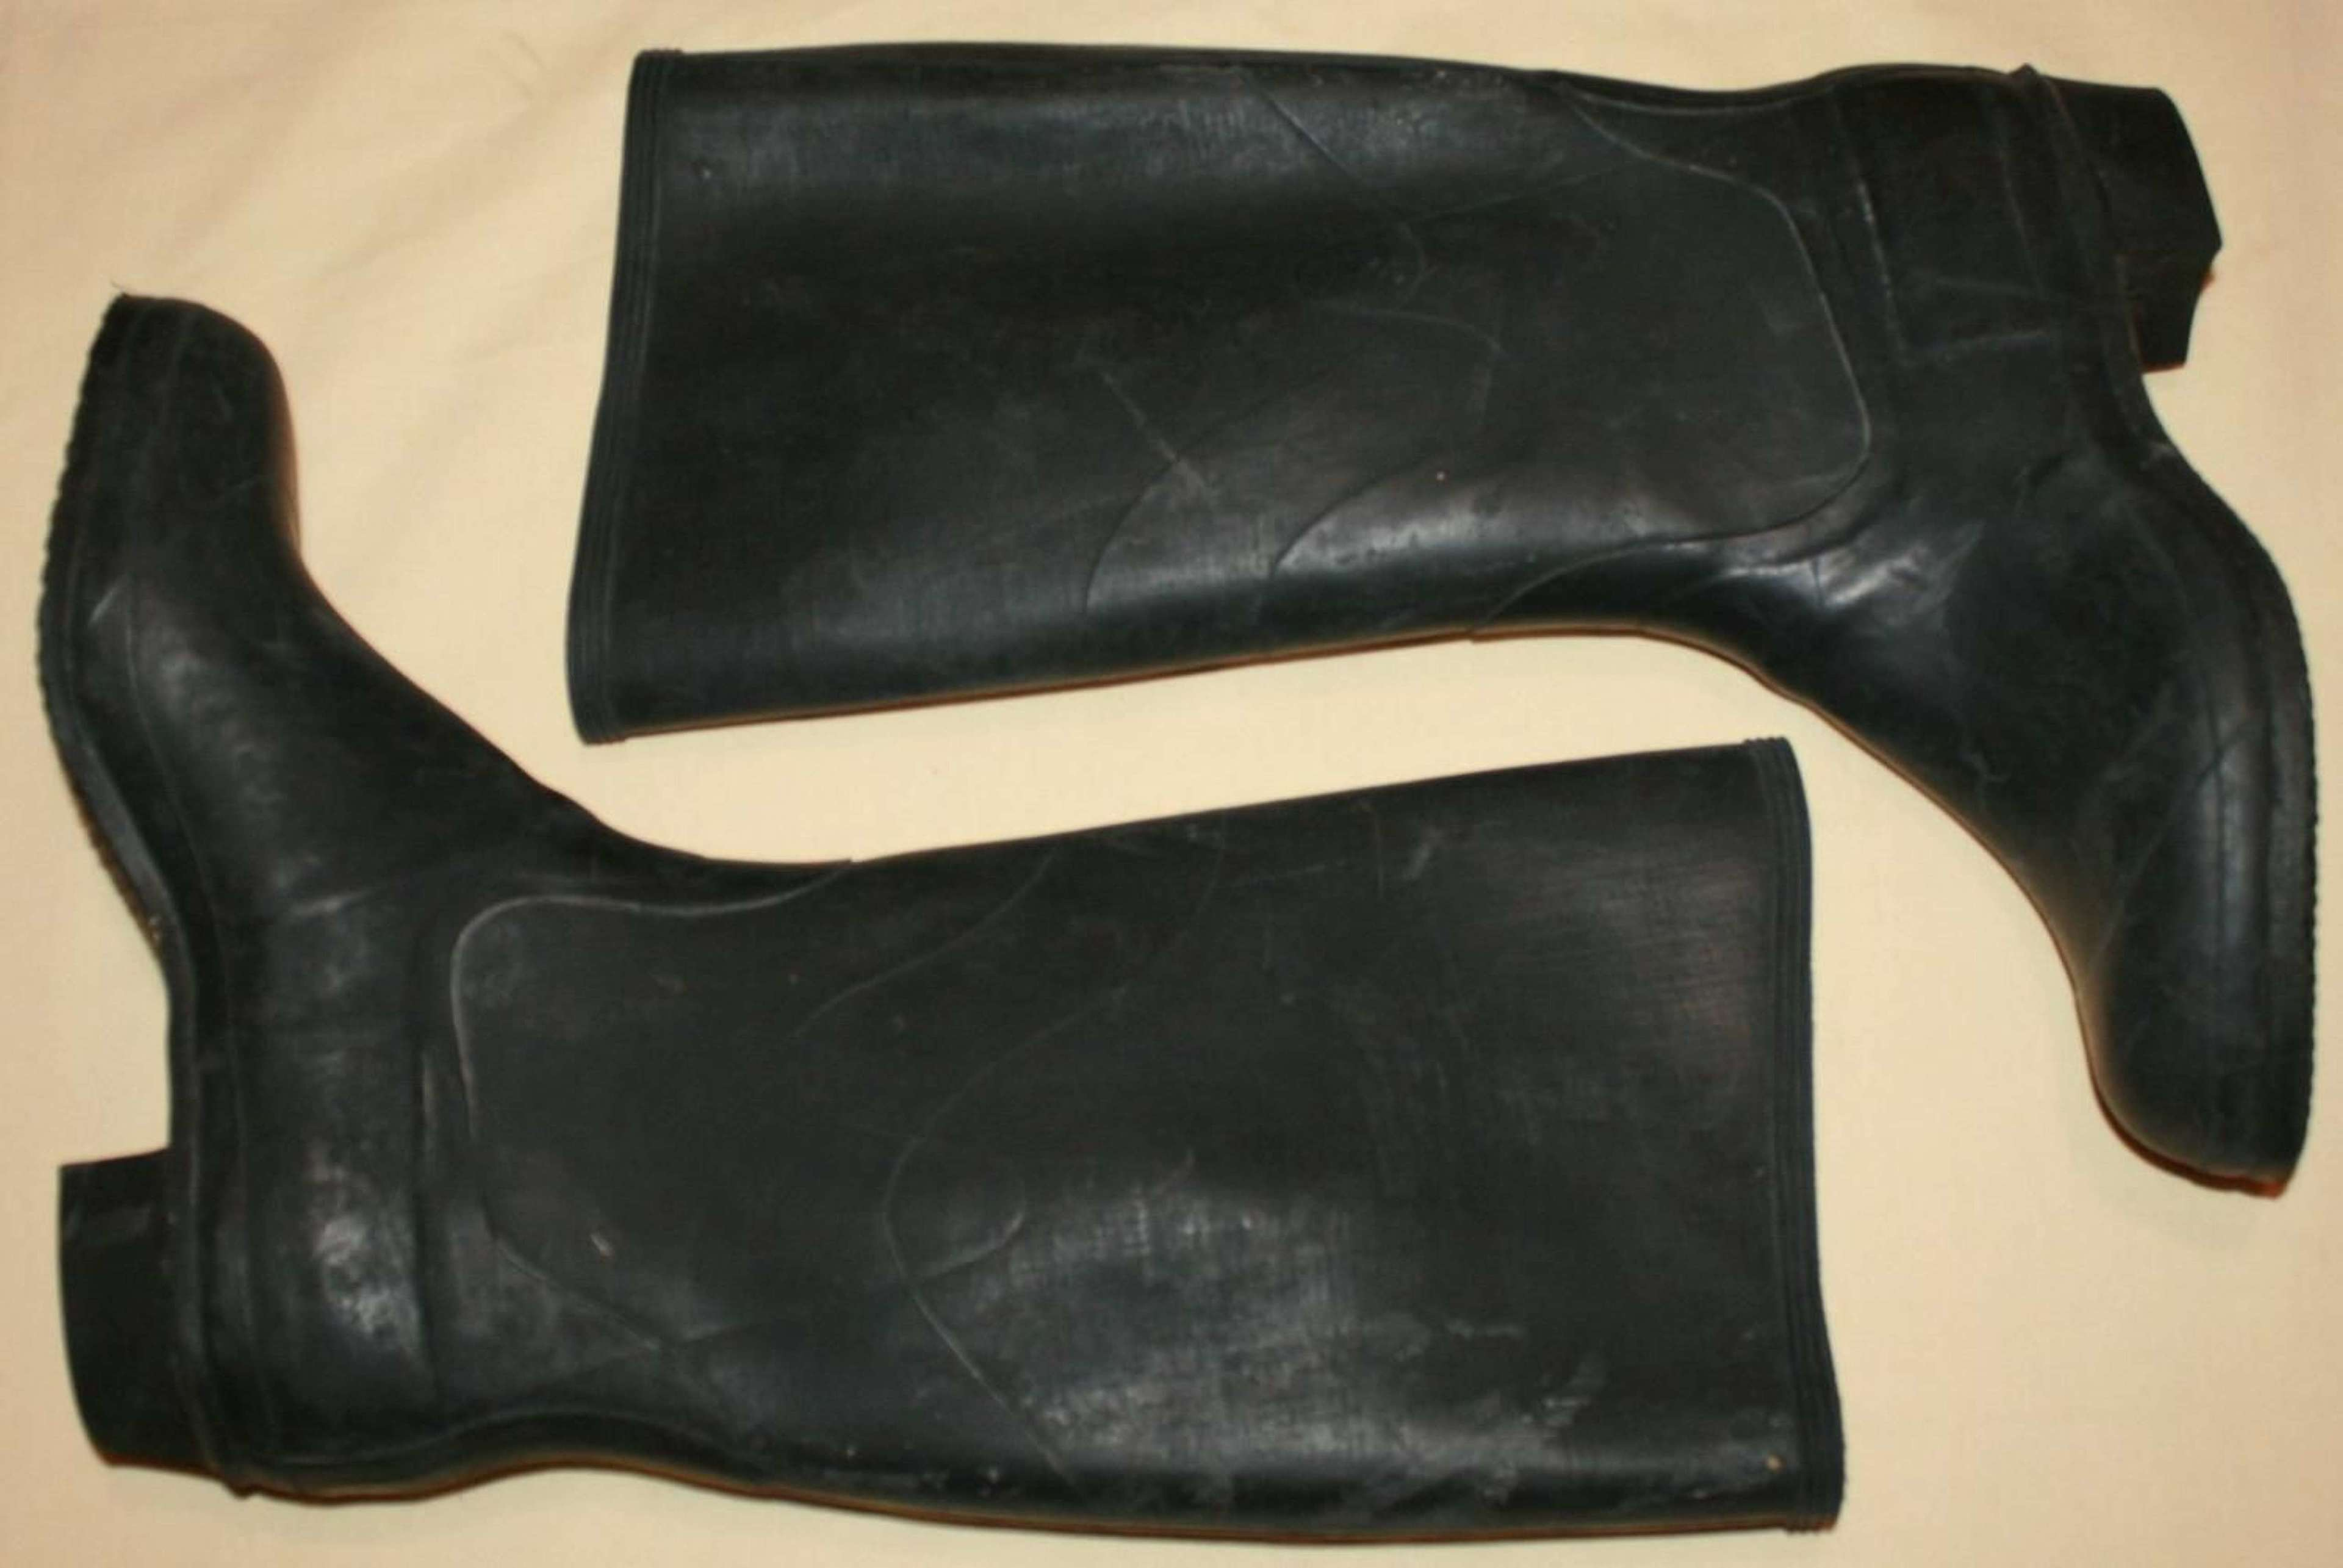 A PAIR OF SIZE 5 ATS WELLINGTON BOOTS